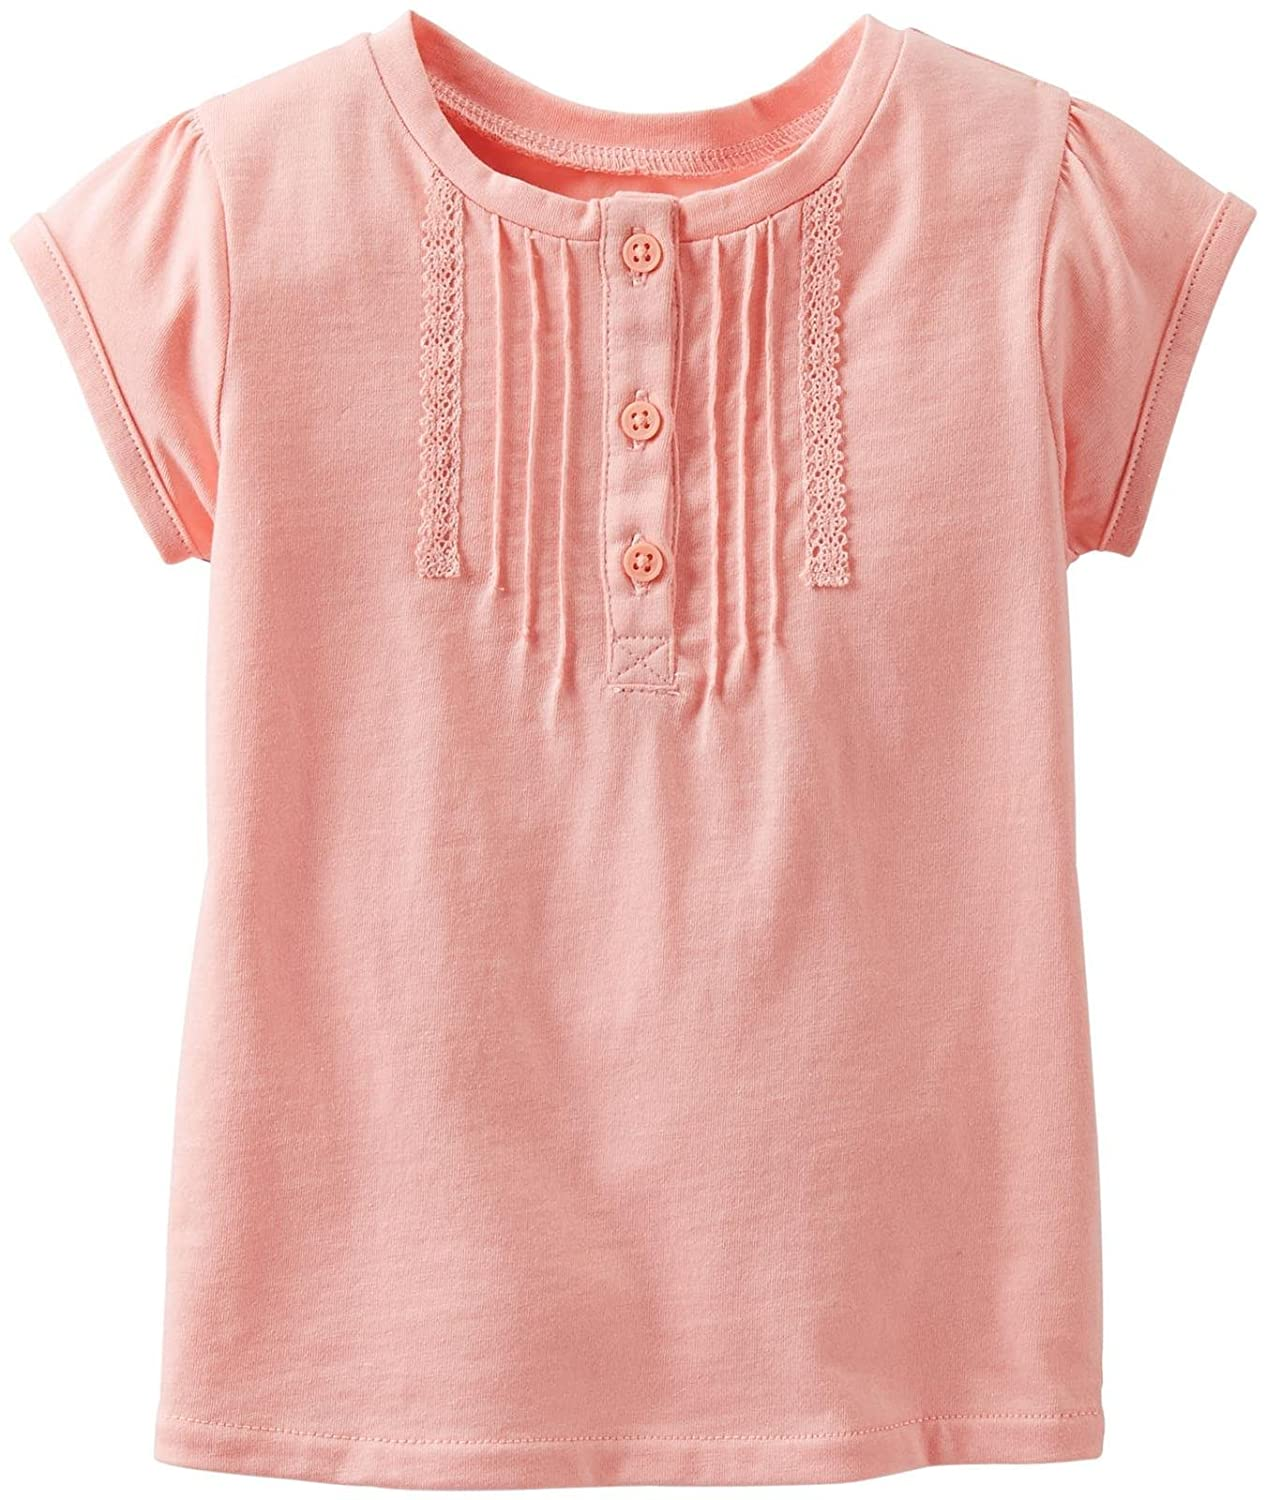 - Peach 6 Months Carters Baby Girls Lace Tee Baby